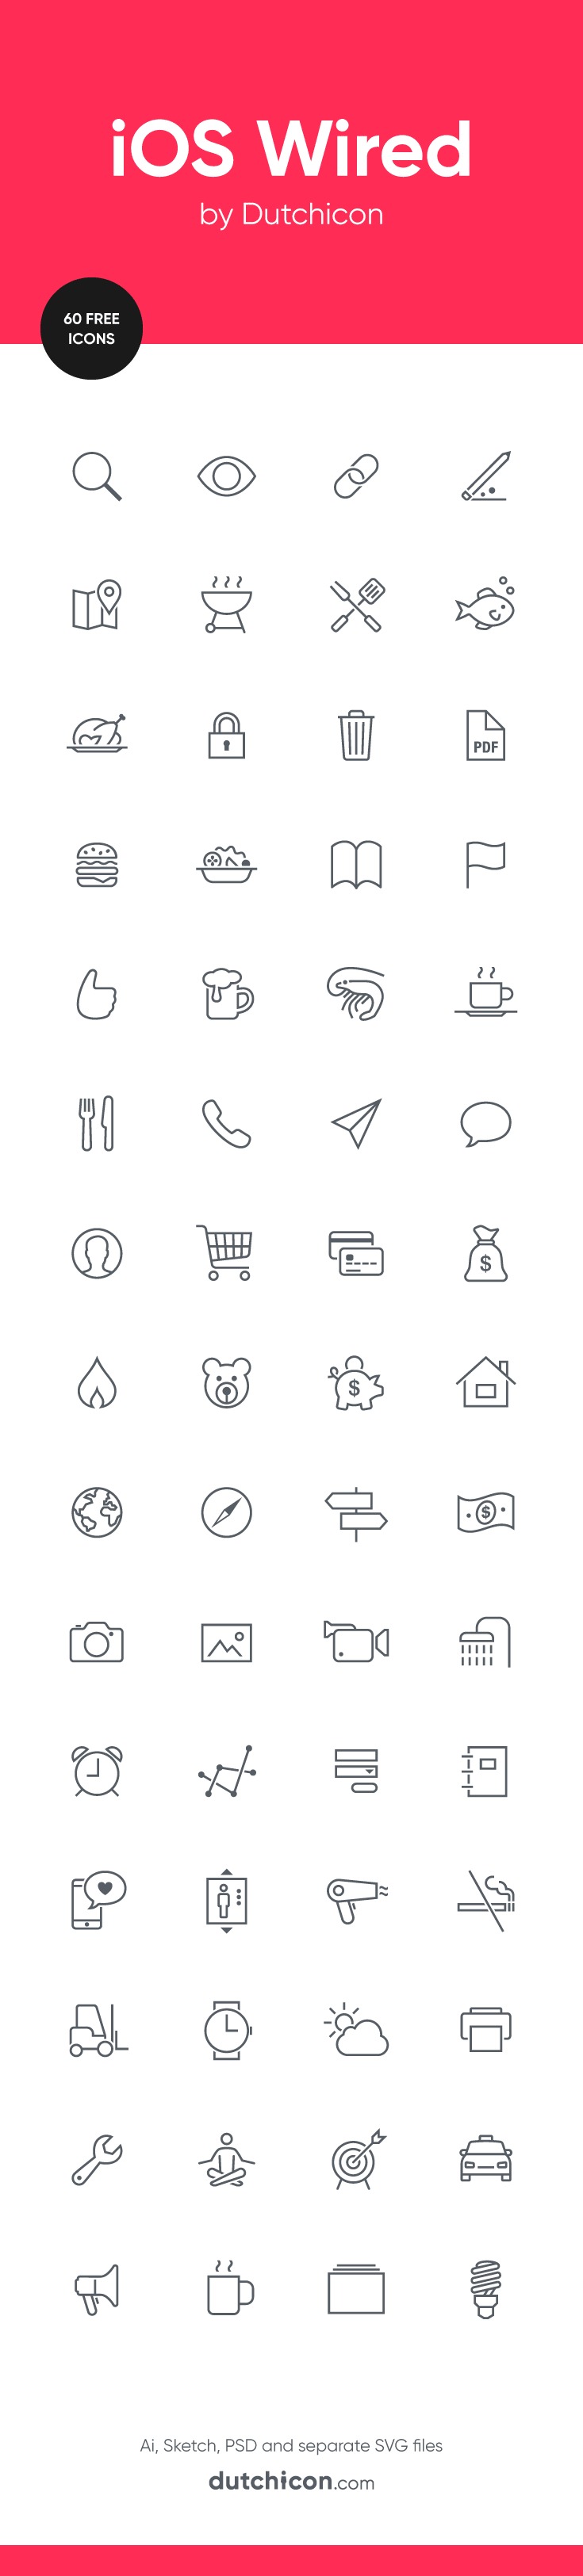 iOS Wired icon set – Created by Dutchicon